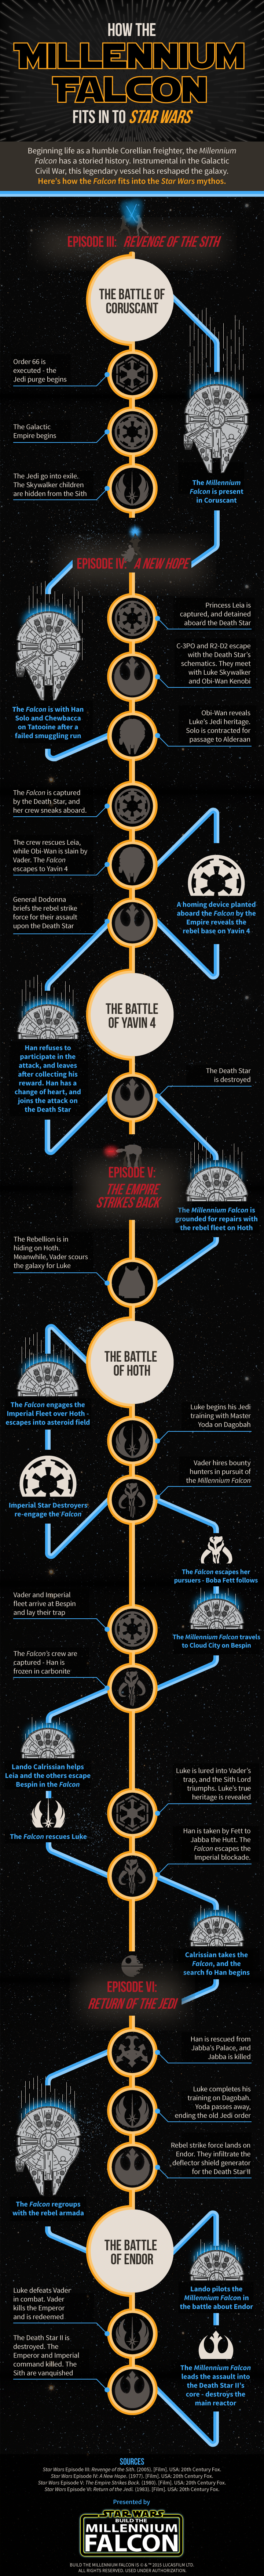 How the Millennium Falcon Fits into Star Wars